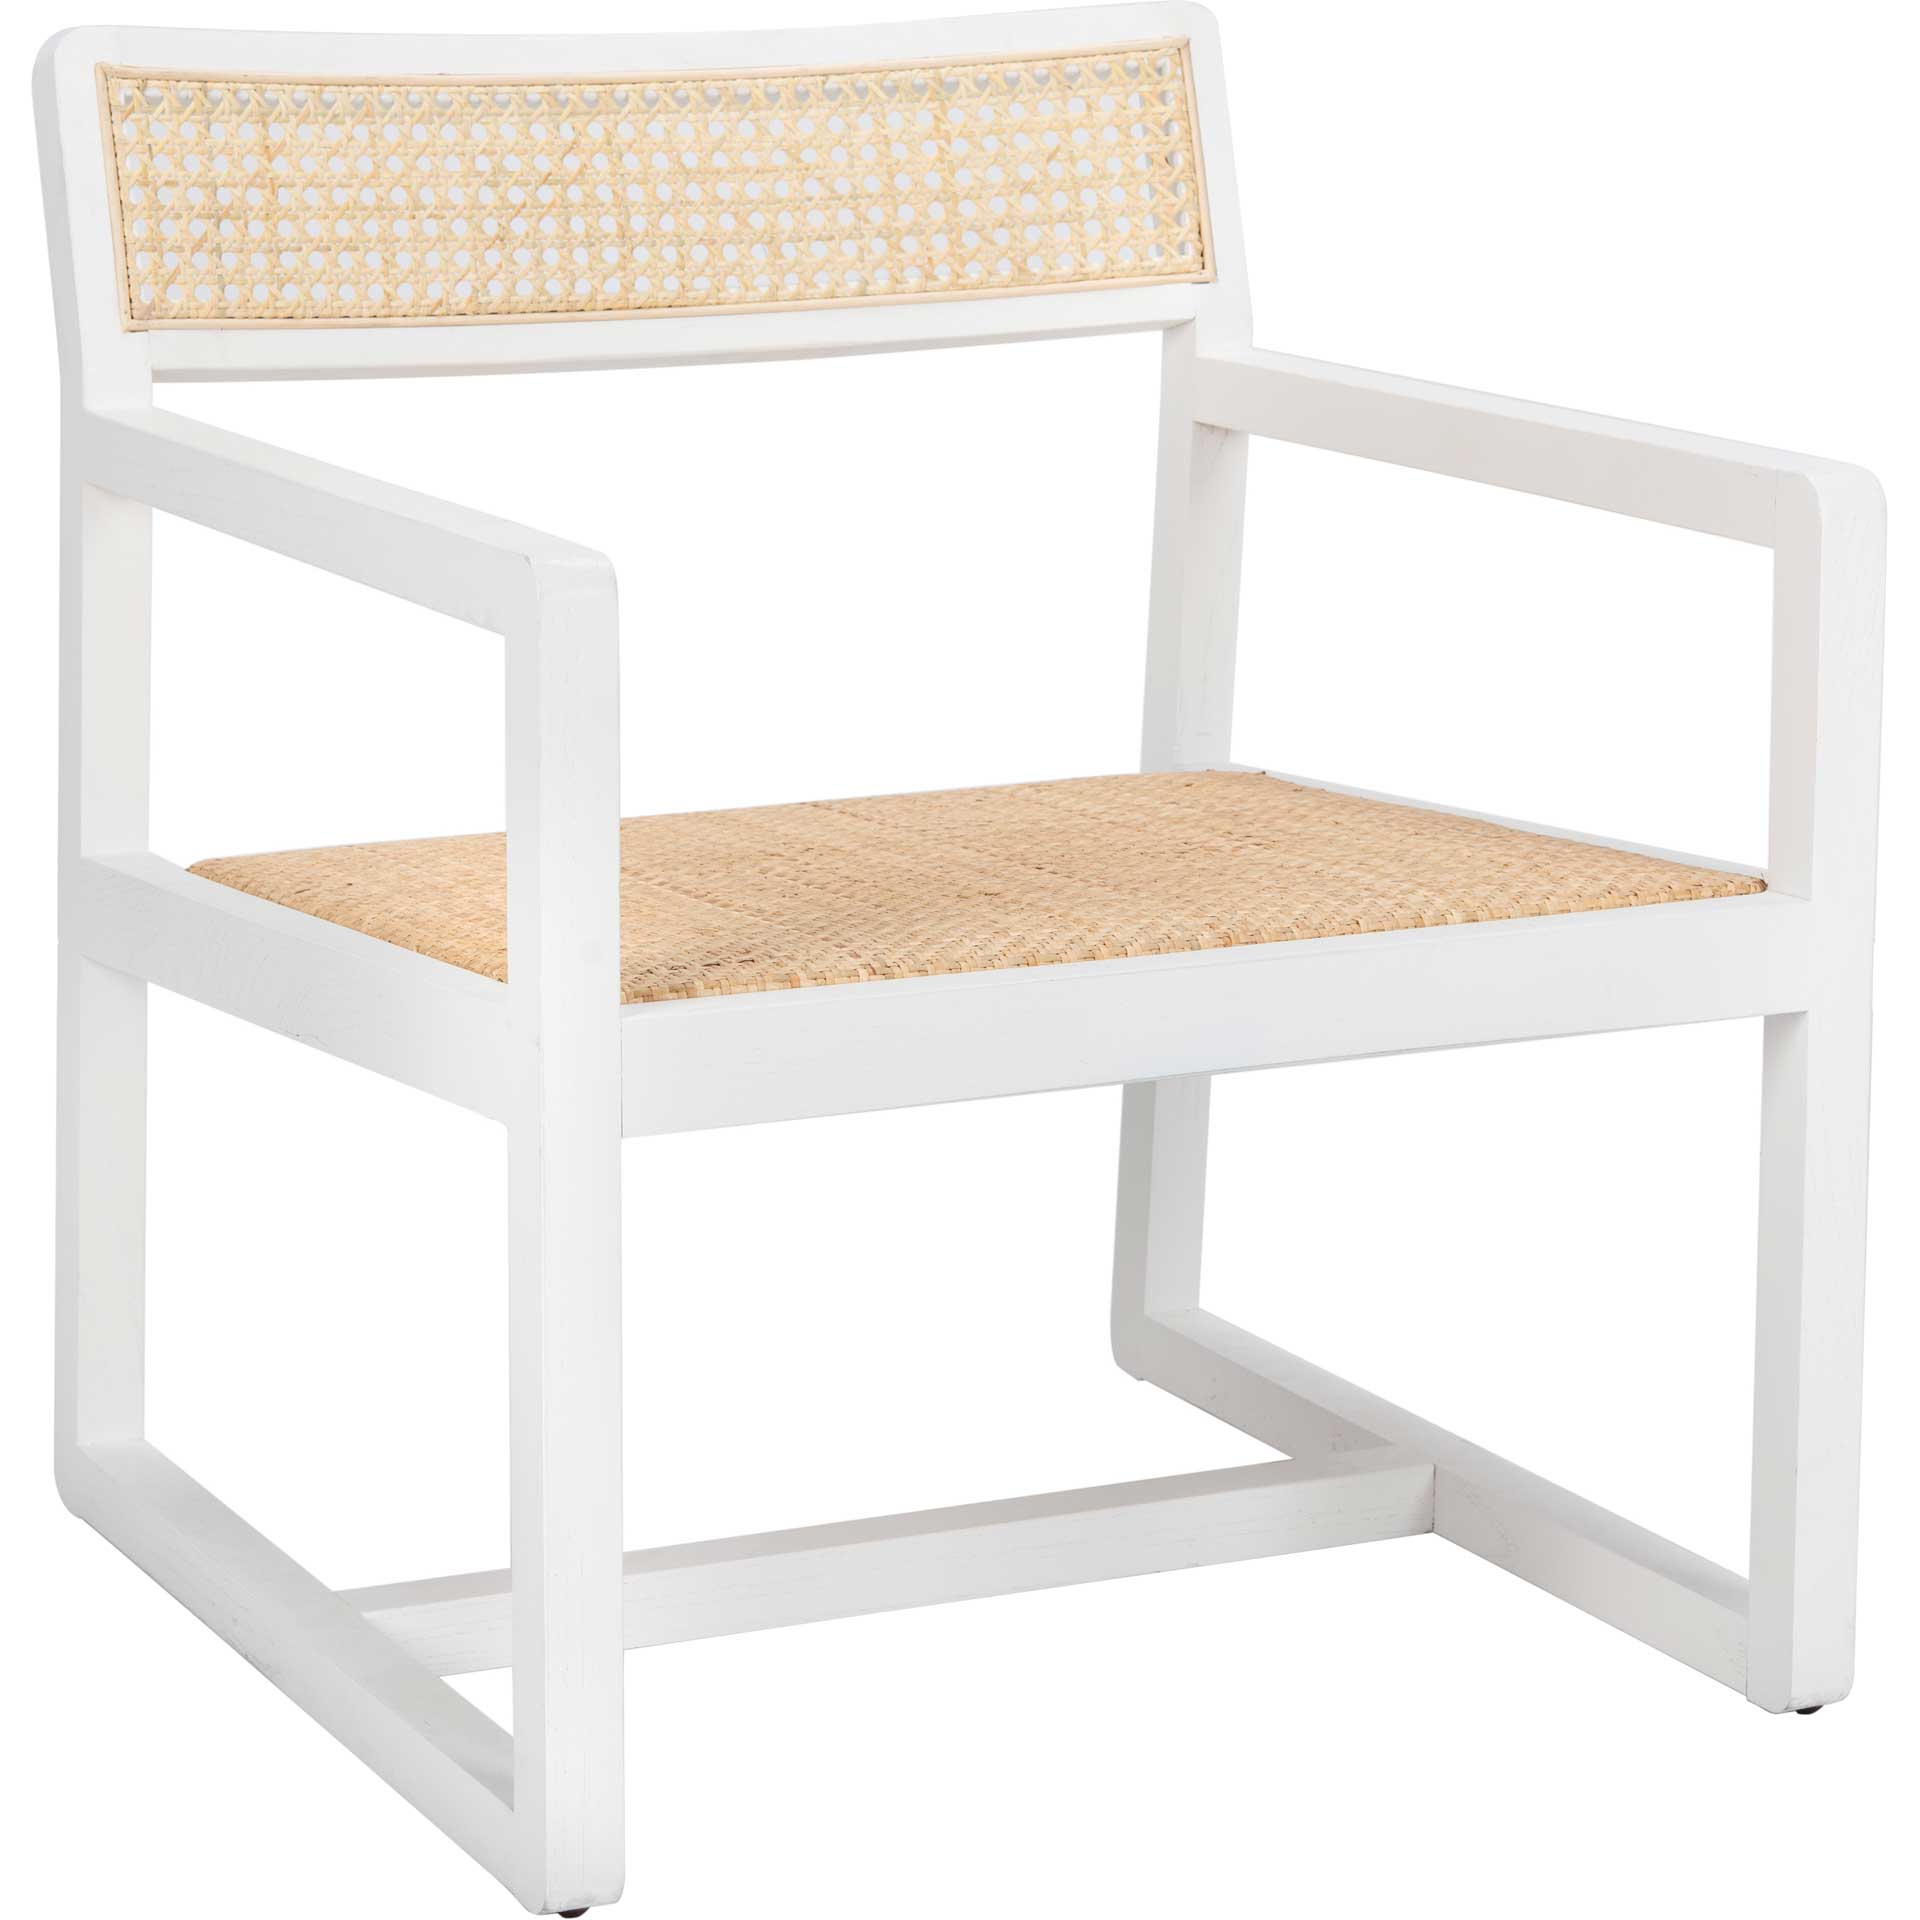 Lucy Cane Accent Chair White/Natural